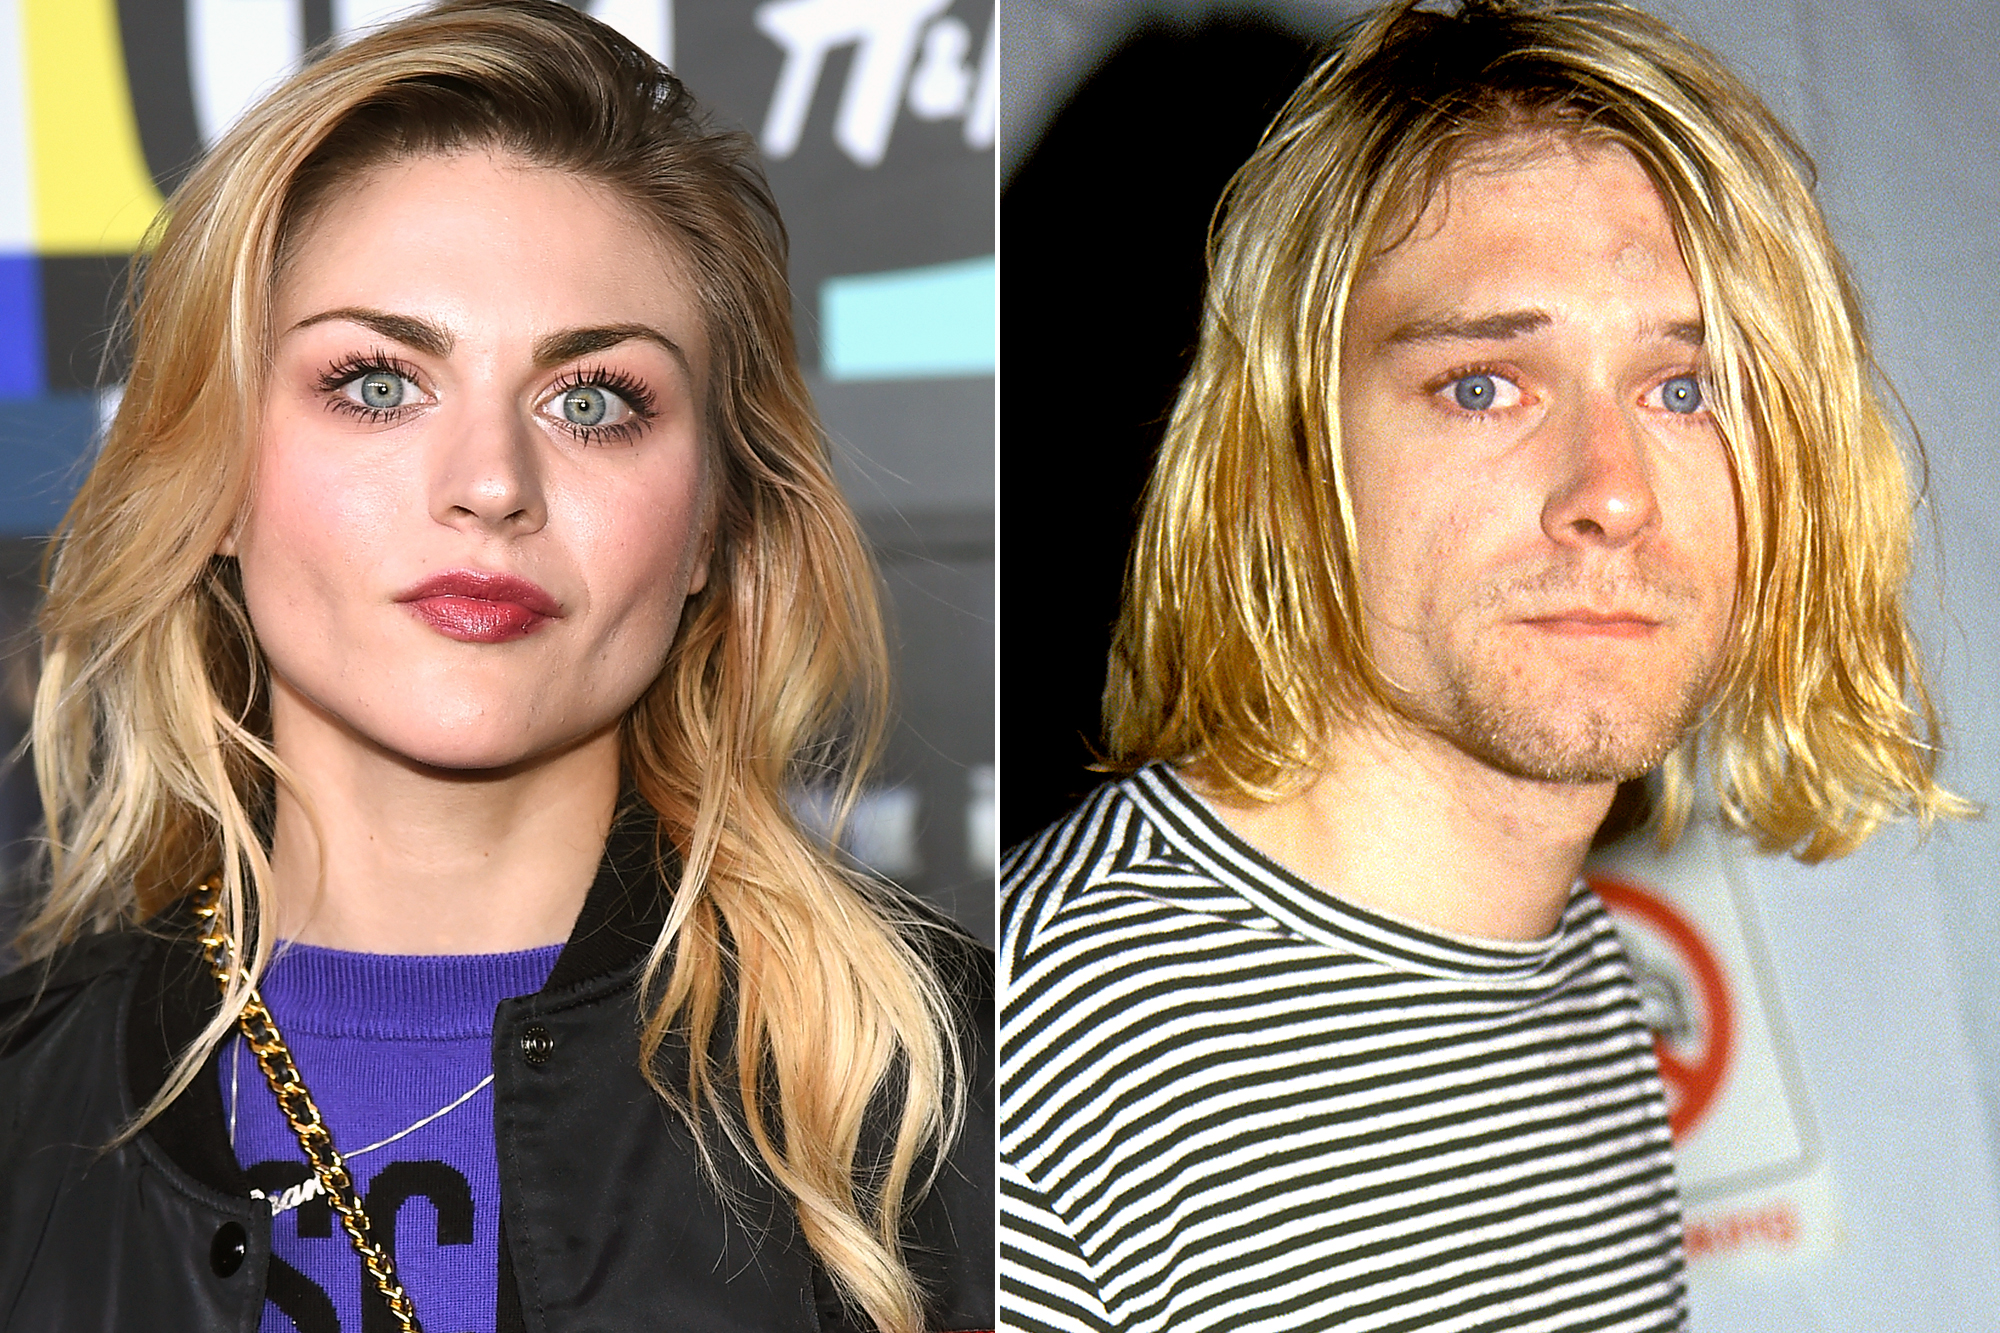 Francis Cobain Pictures photo 14